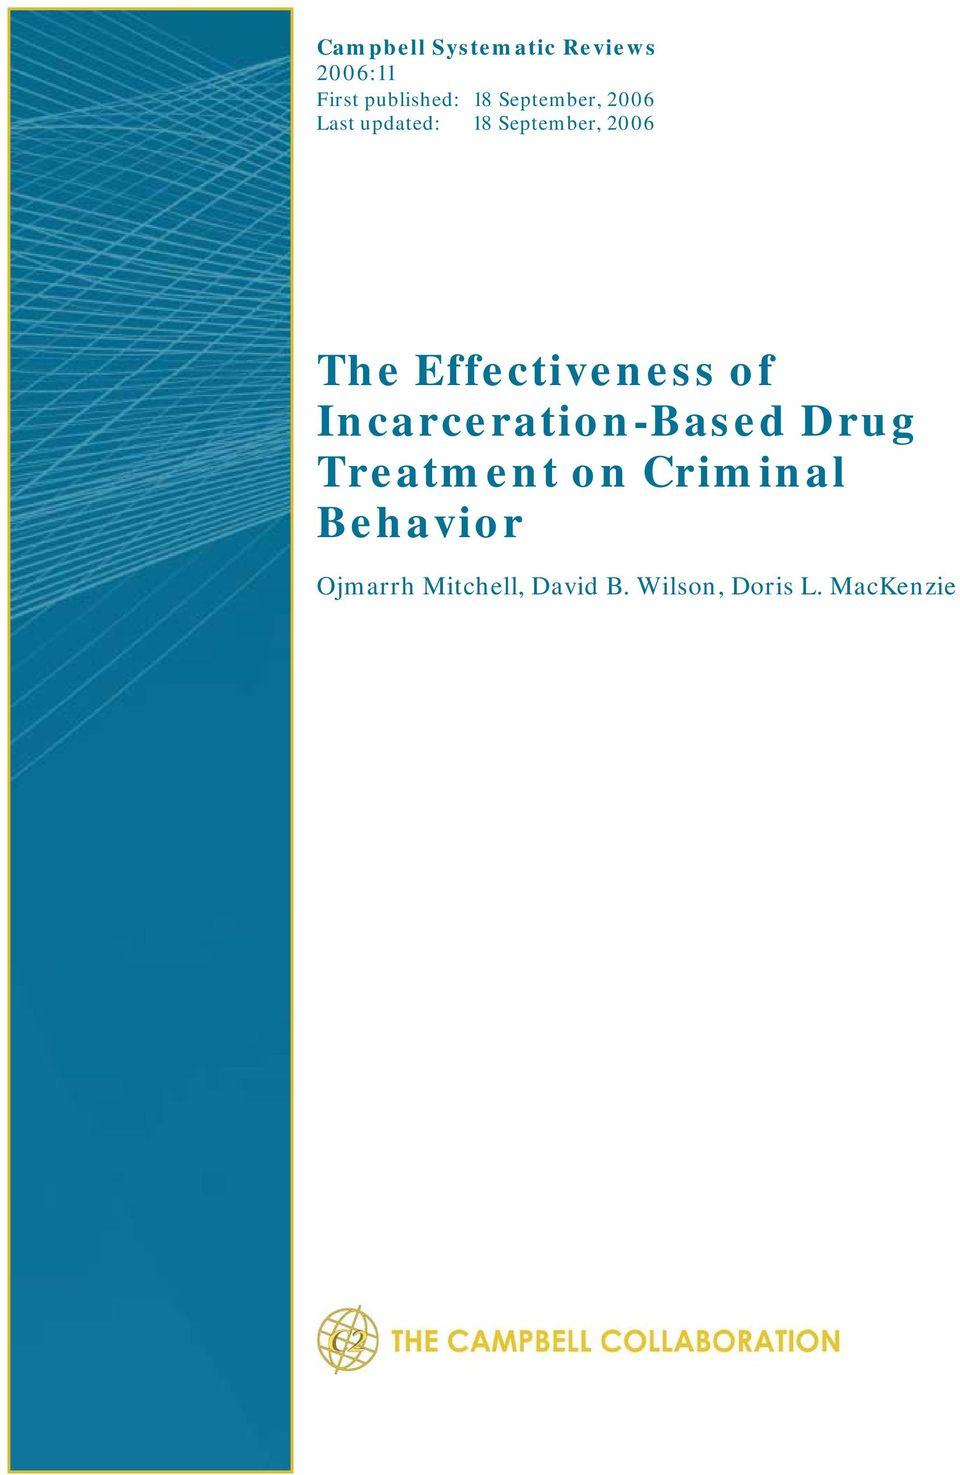 Effectiveness of Incarceration-Based Drug Treatment on